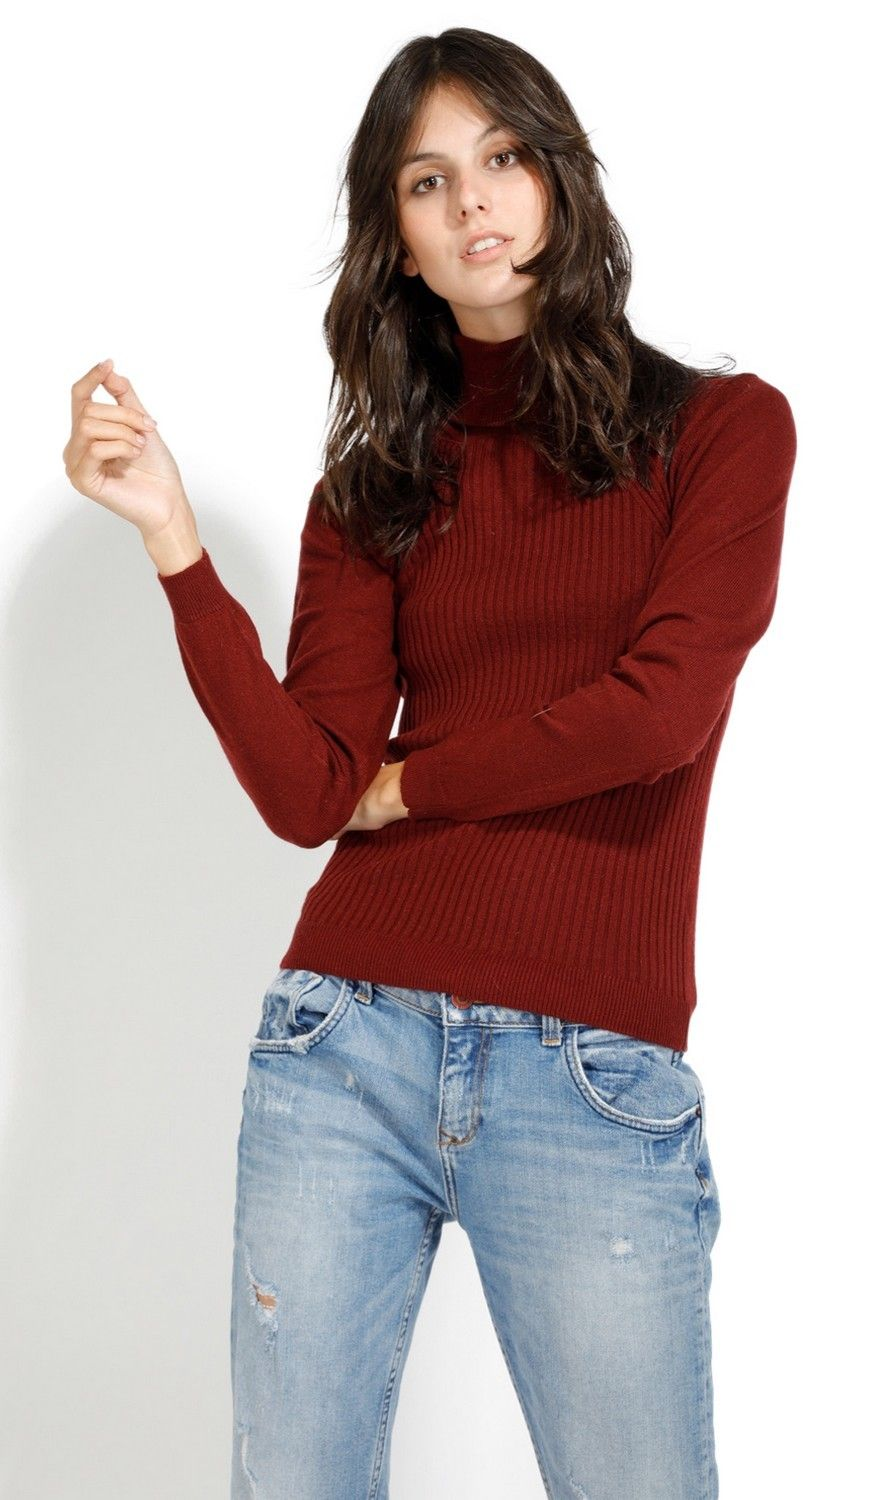 Assuili Turtleneck Ribbed Front Sweater in Maroon